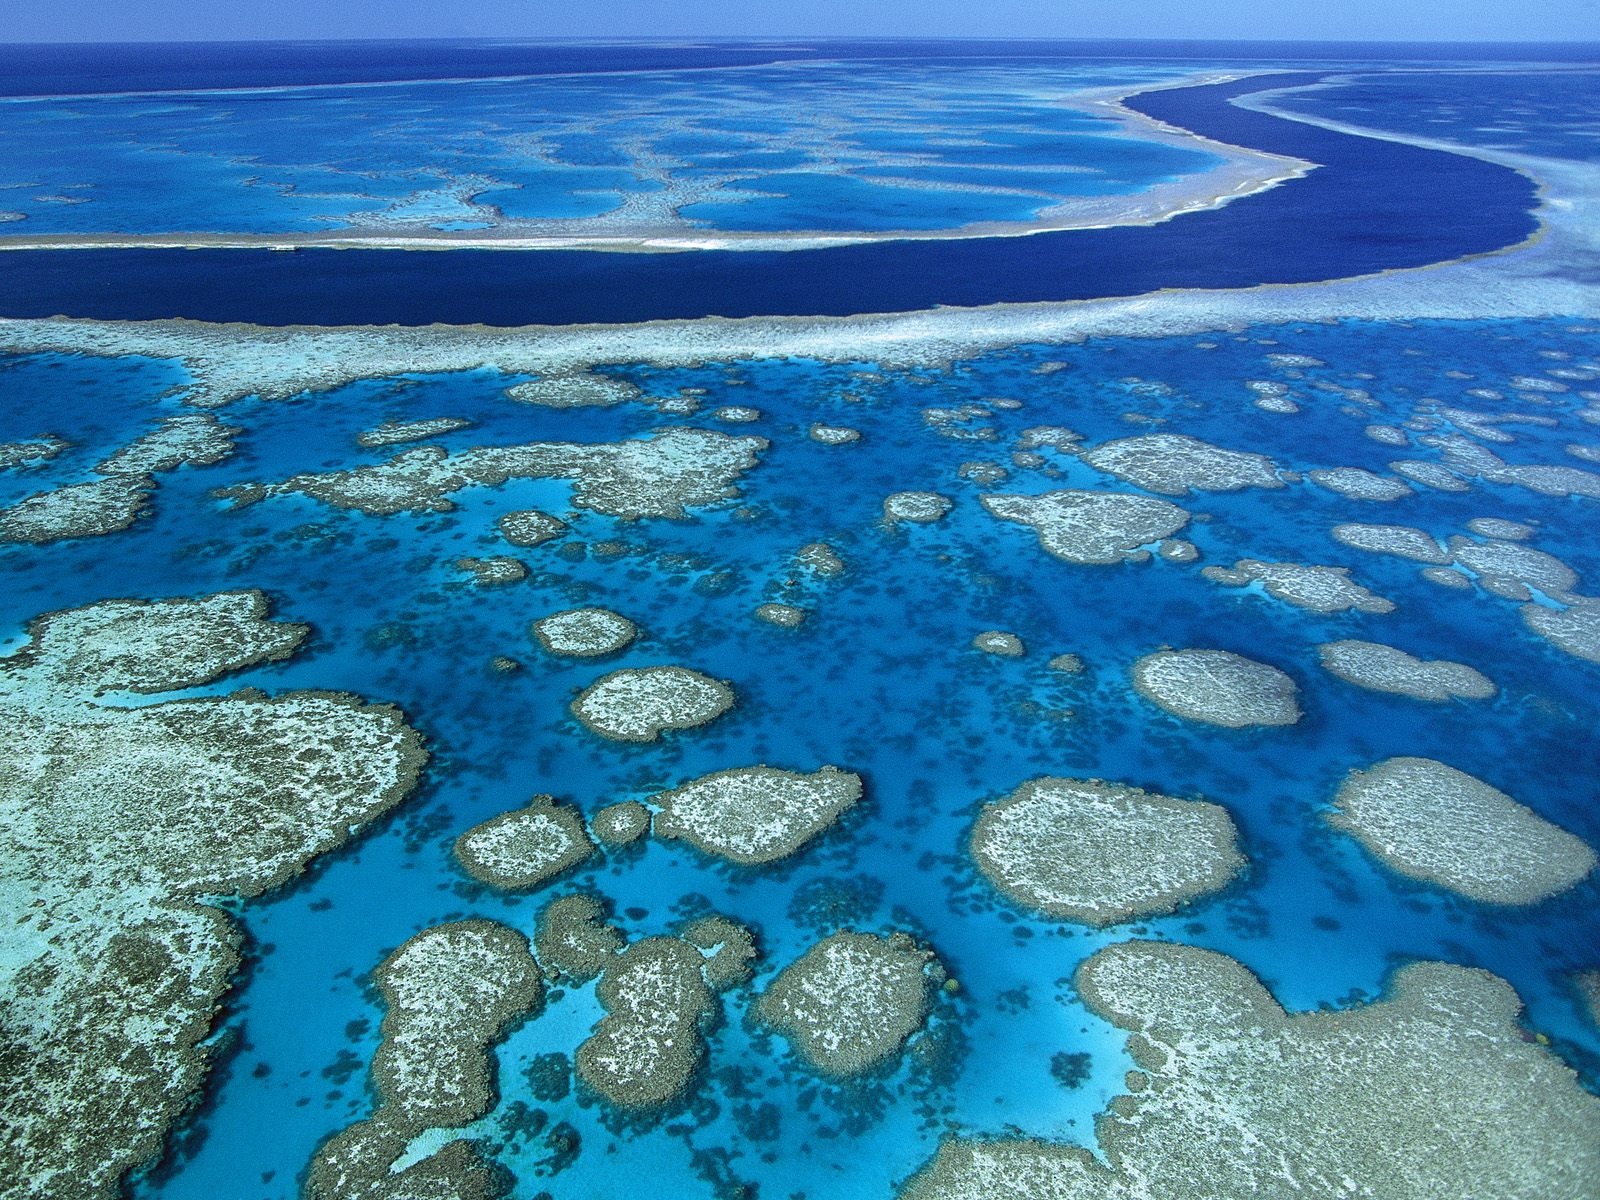 Image of the Great Barrier Reef.